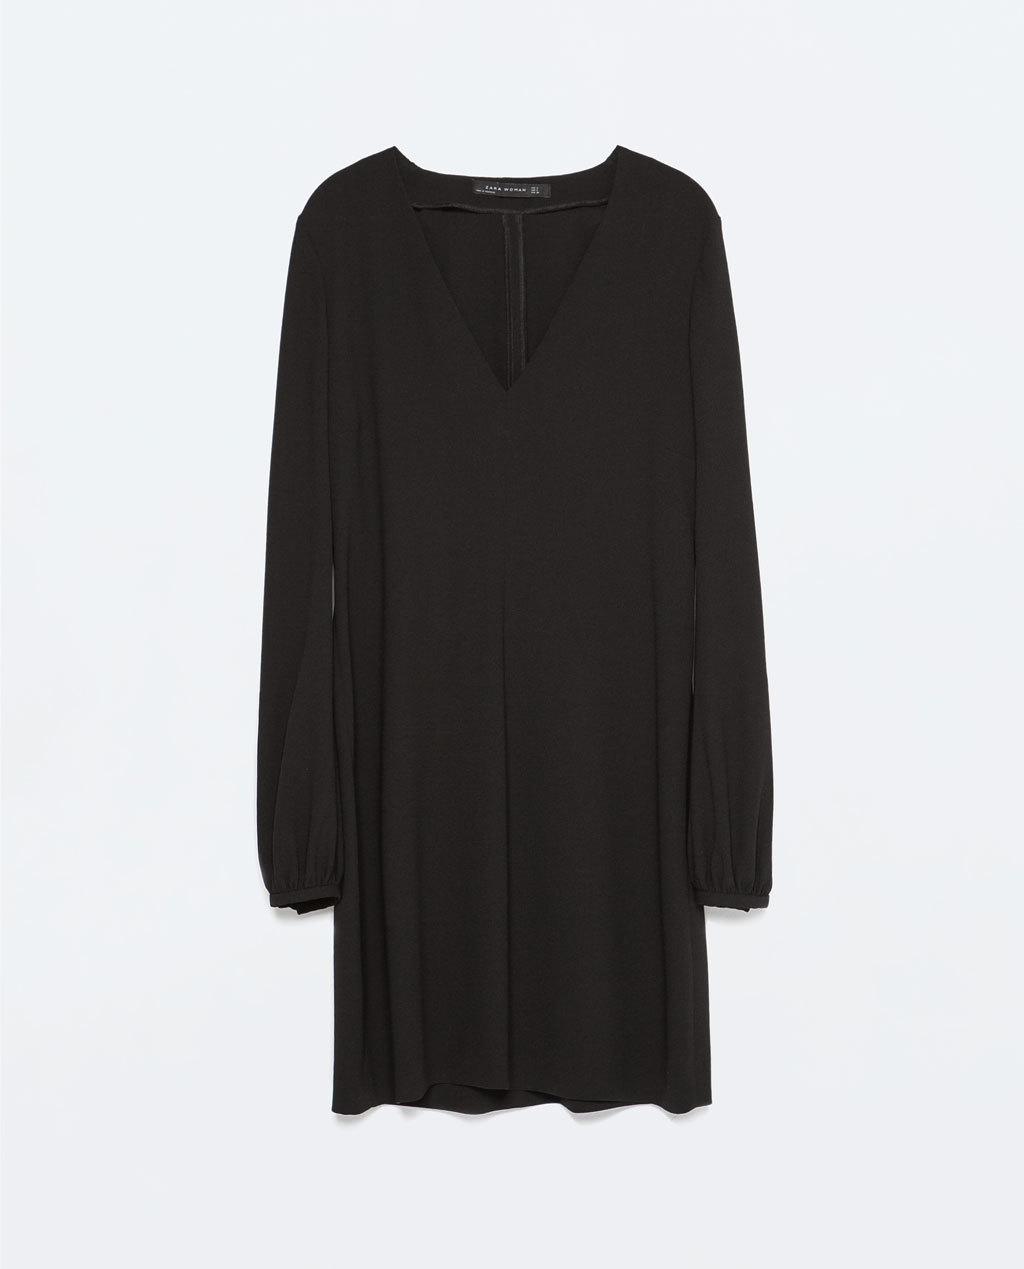 Long Sleeved Full Dress - style: shift; length: mid thigh; neckline: low v-neck; pattern: plain; sleeve style: balloon; predominant colour: black; occasions: evening, creative work; fit: soft a-line; fibres: polyester/polyamide - 100%; sleeve length: long sleeve; texture group: crepes; pattern type: fabric; season: s/s 2015; wardrobe: investment